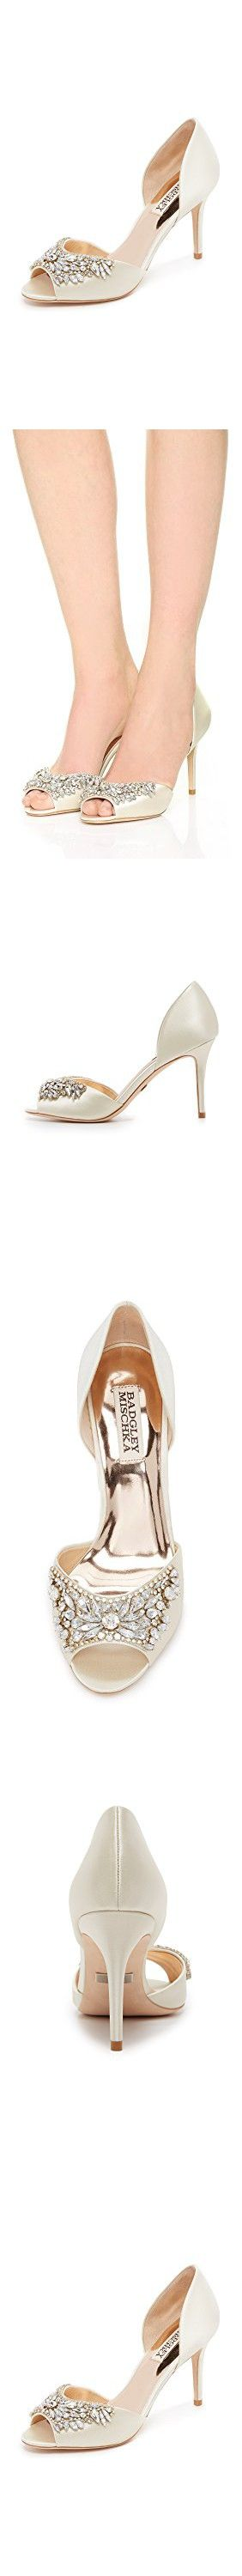 Badgley Mischka Women's Candance Peep Toe Pumps, Ivory, 6 B(M) US